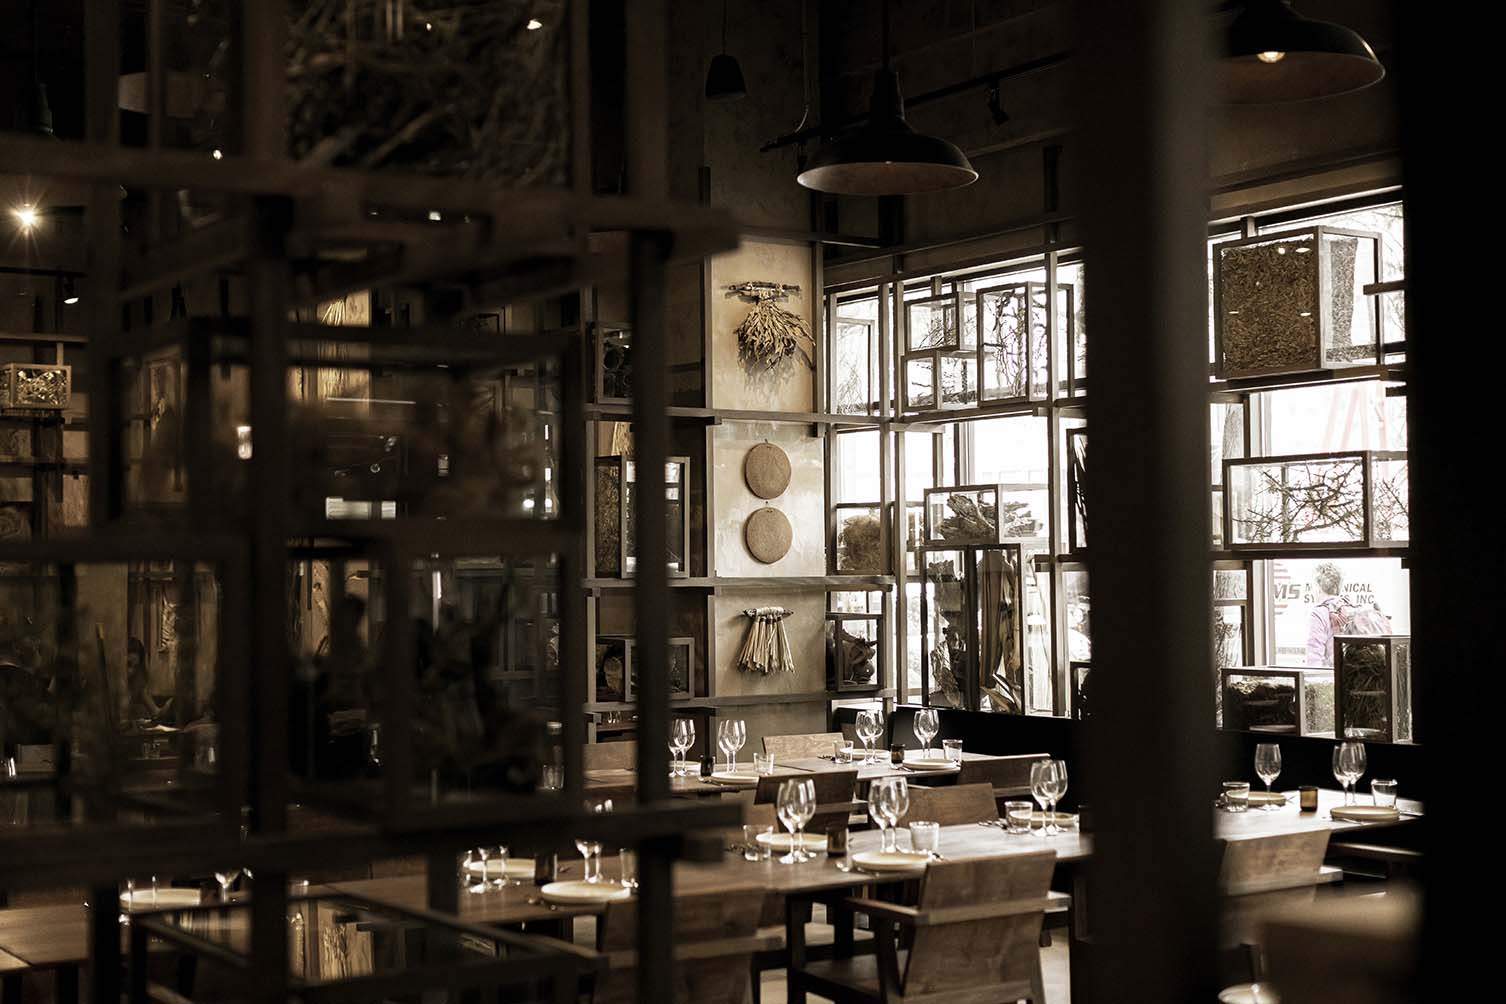 Tzuco Chicago Restaurant from Carlos Gaytán and Studio Cadena Concept Design